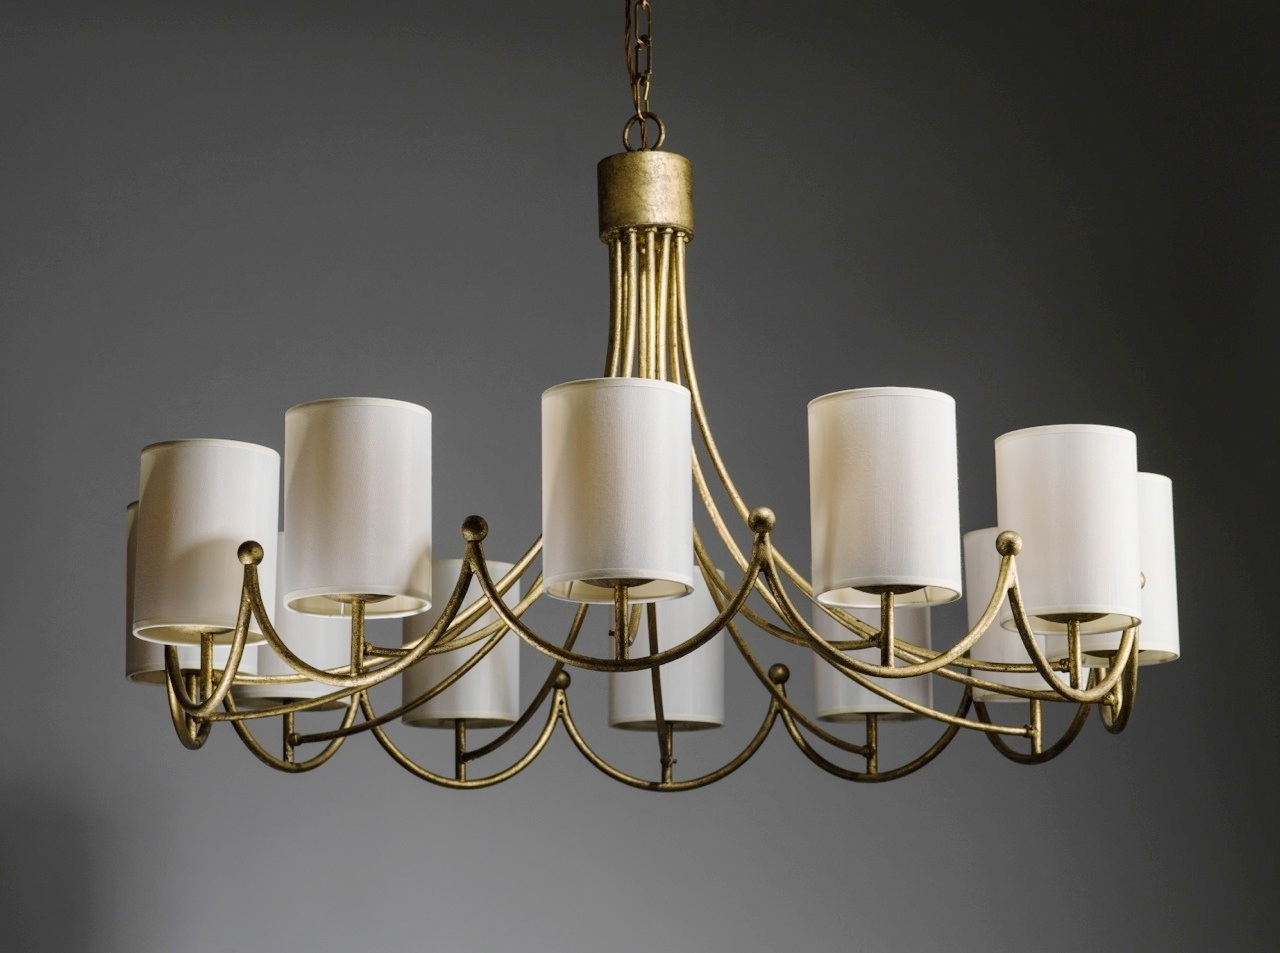 Cream Gold Chandelier With Most Recent Royere Inspired Wrought Iron 12 Light Chandelier In Distressed Gold (View 9 of 15)